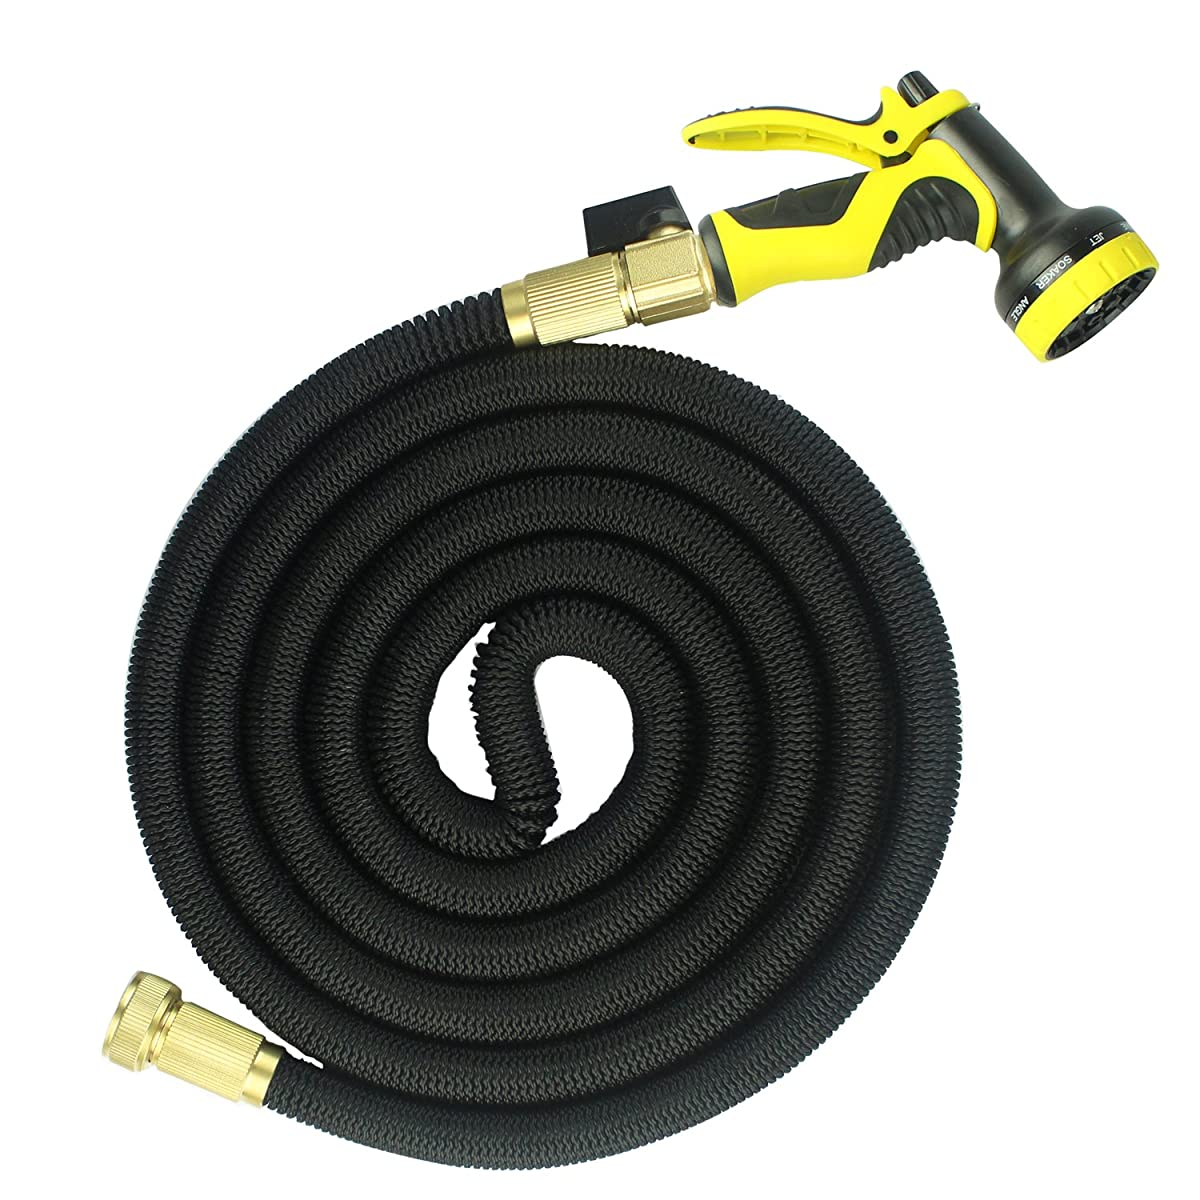 FOCUSAIRY 25 Feet Expanding Durable Expandable Strongest Outdoor Garden Water Hose with Shut Off Valve Solid Brass Connector and 9-pattern Spray Nozzle